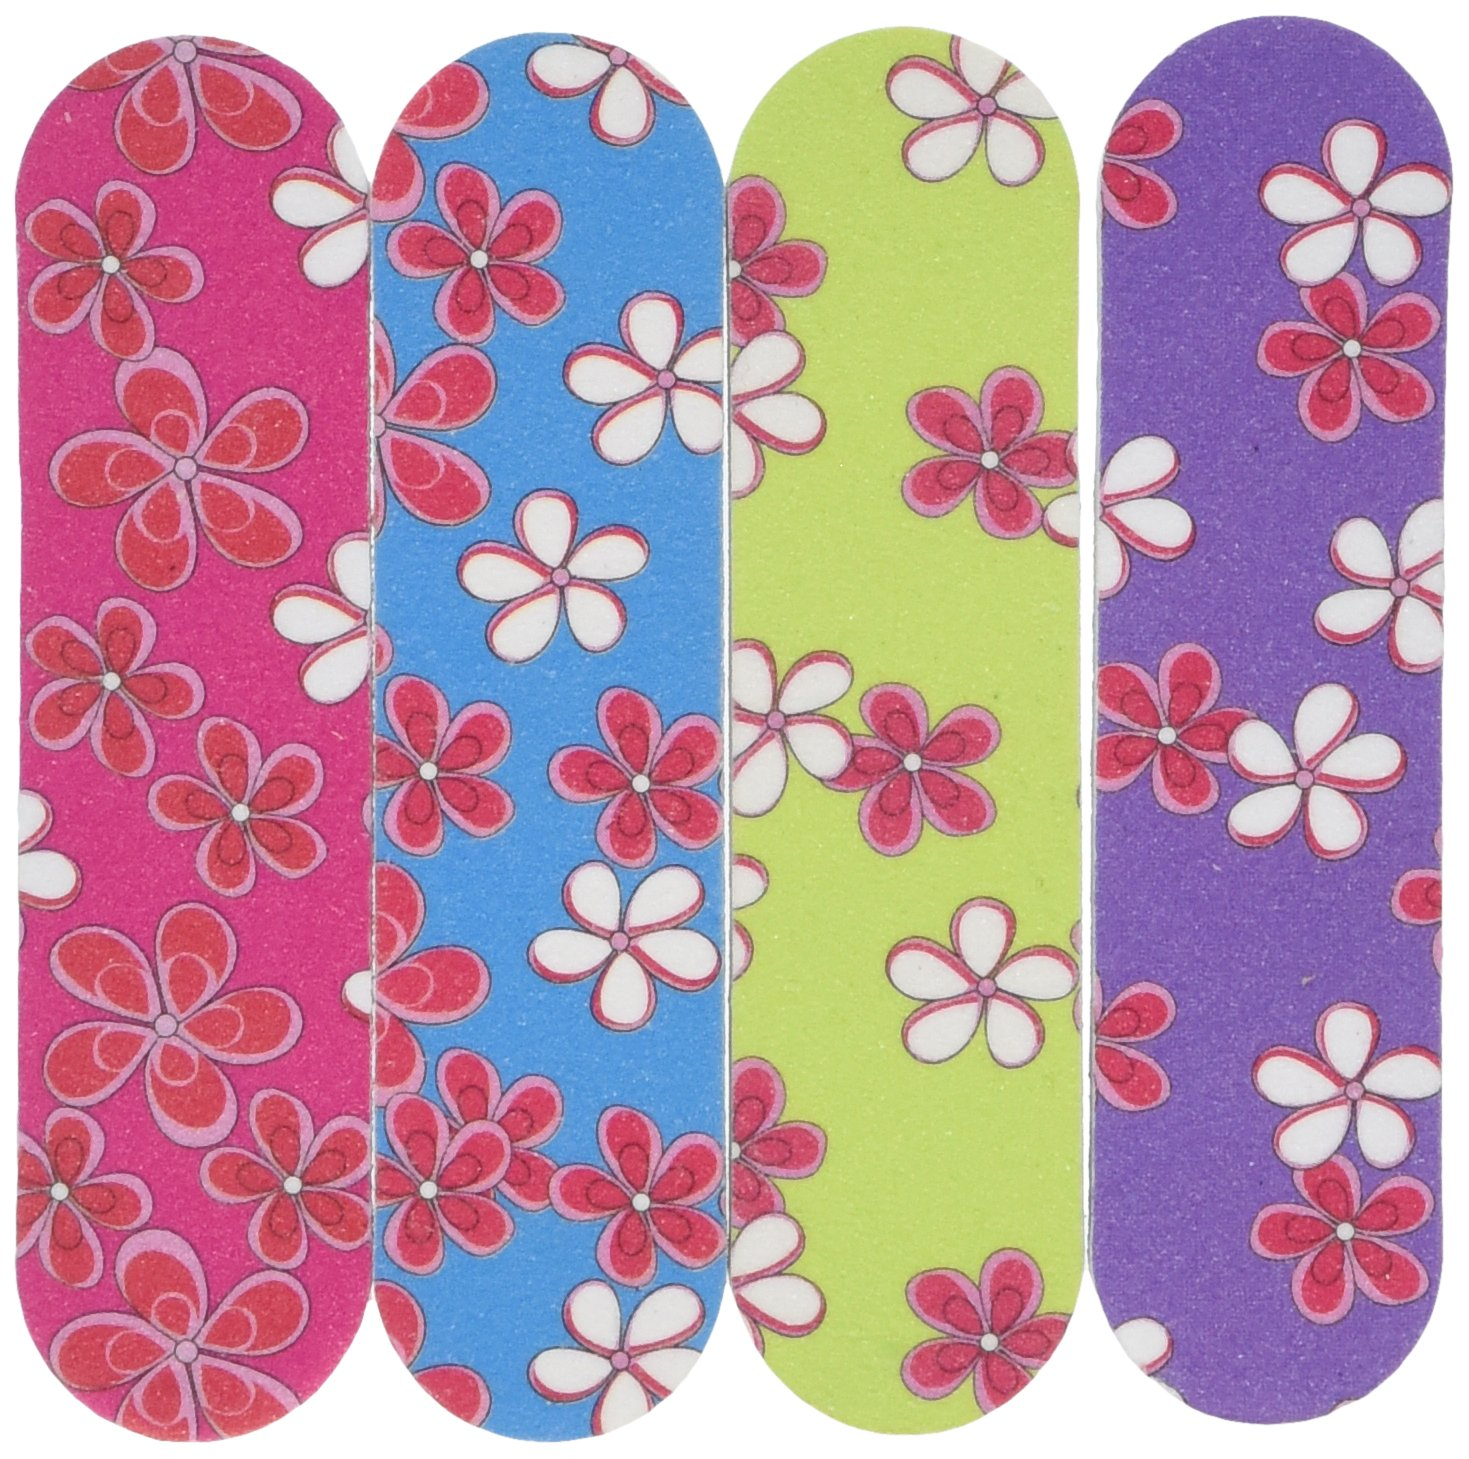 Amazon.com: GIRLIE MINI EMERY BOARDS (1 DOZEN) - BULK by Fun Express ...